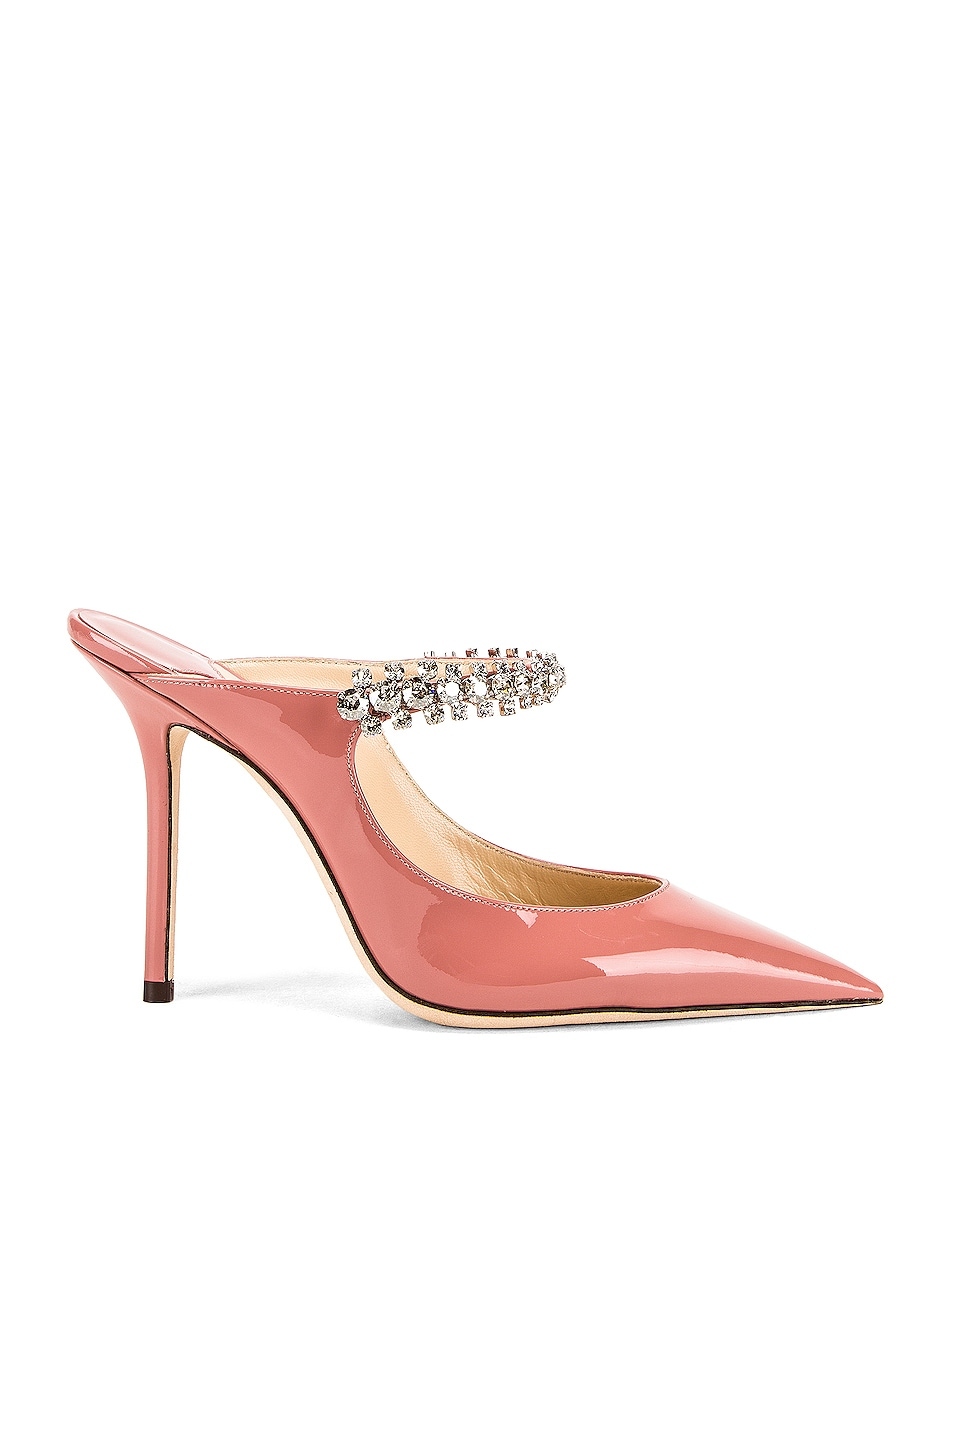 Image 1 of Jimmy Choo Bing 100 Patent Leather Mule in Blush